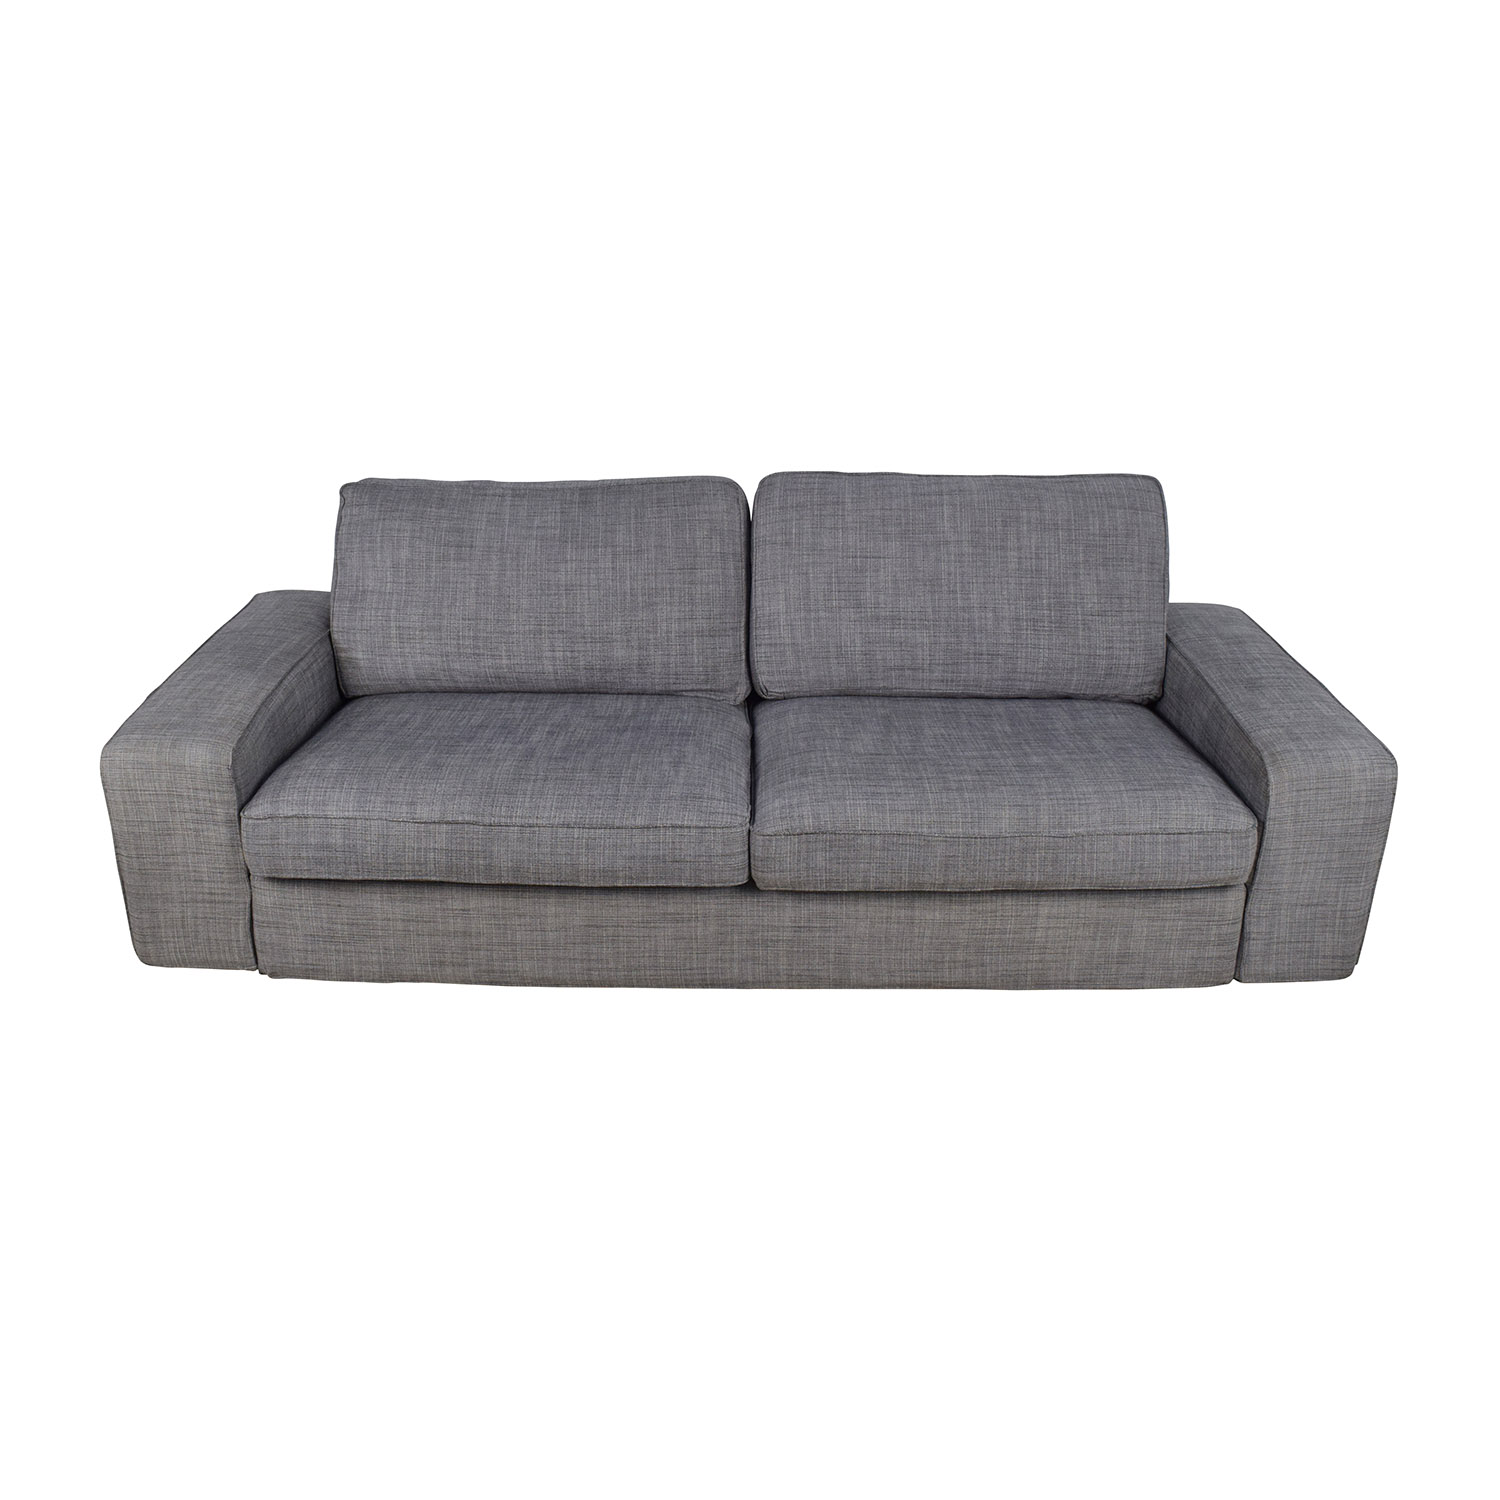 38 off ikea ikea kivik gray sofa sofas for Kivik chaise ikea